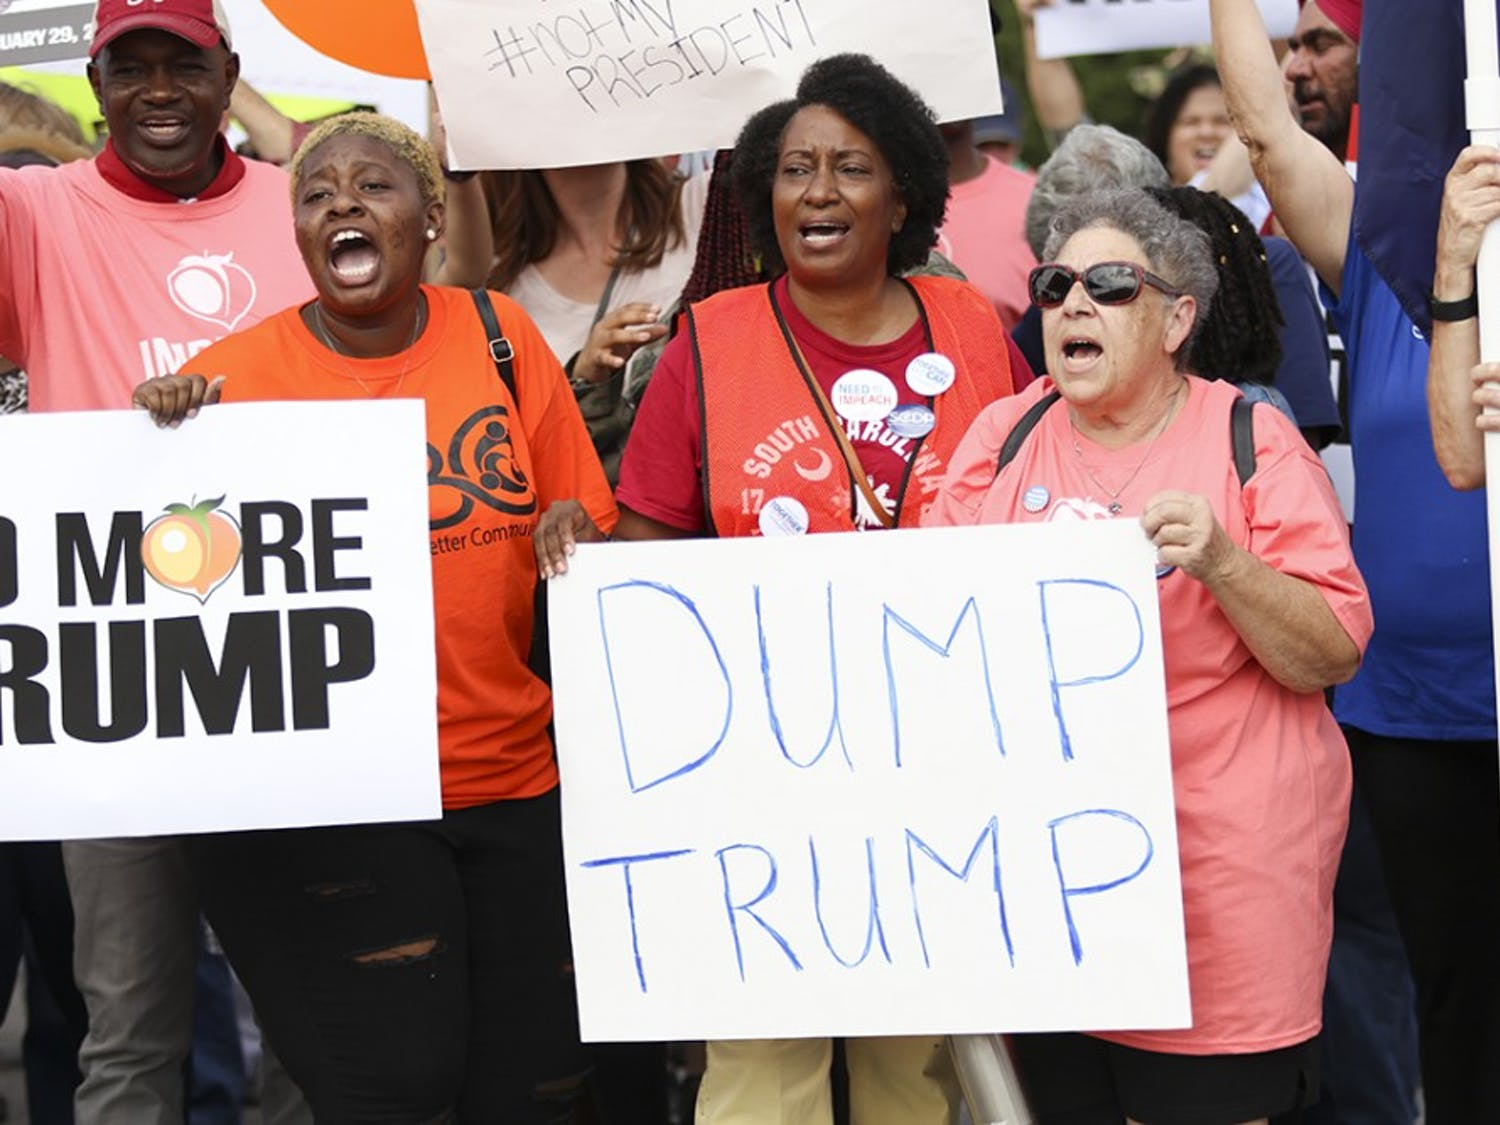 Non-Trump supporters chant and yell while holding protest posters on Oct. 25 before the march began to Benedict College.